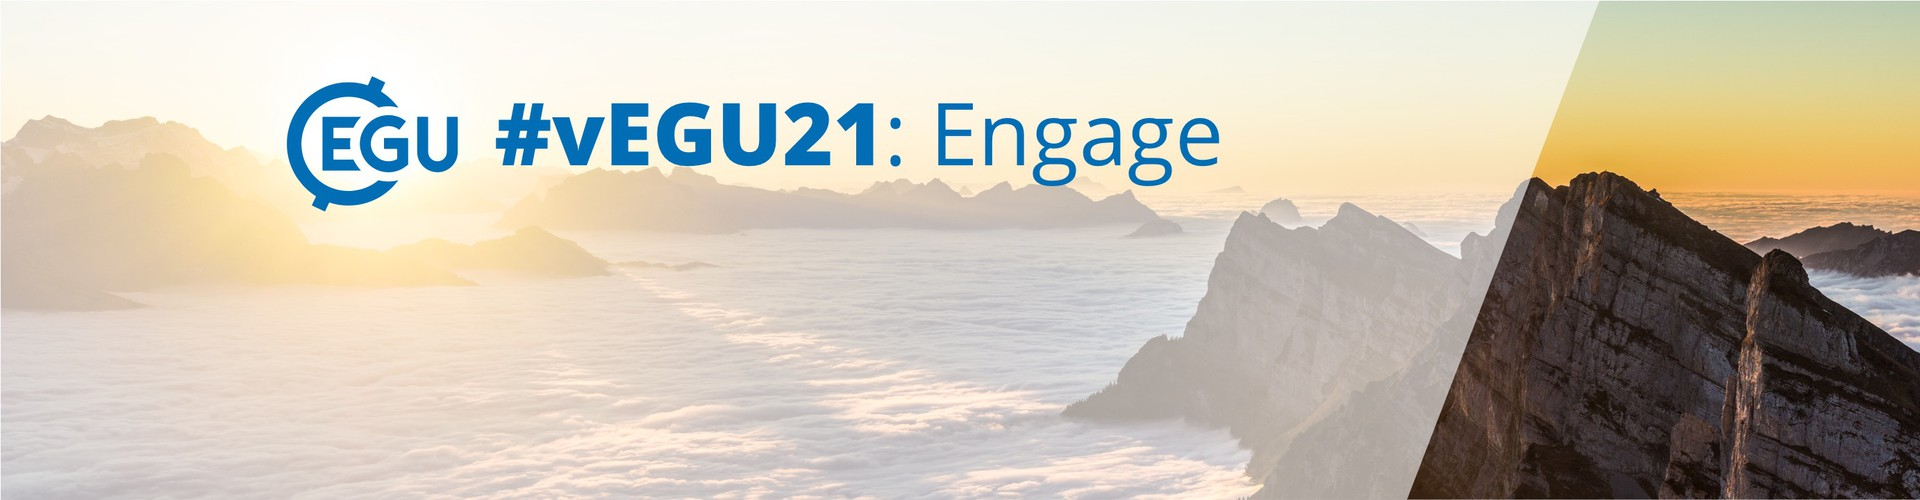 vEGU21 engage banner (Credit: Jonas Igel via Imaggeo)